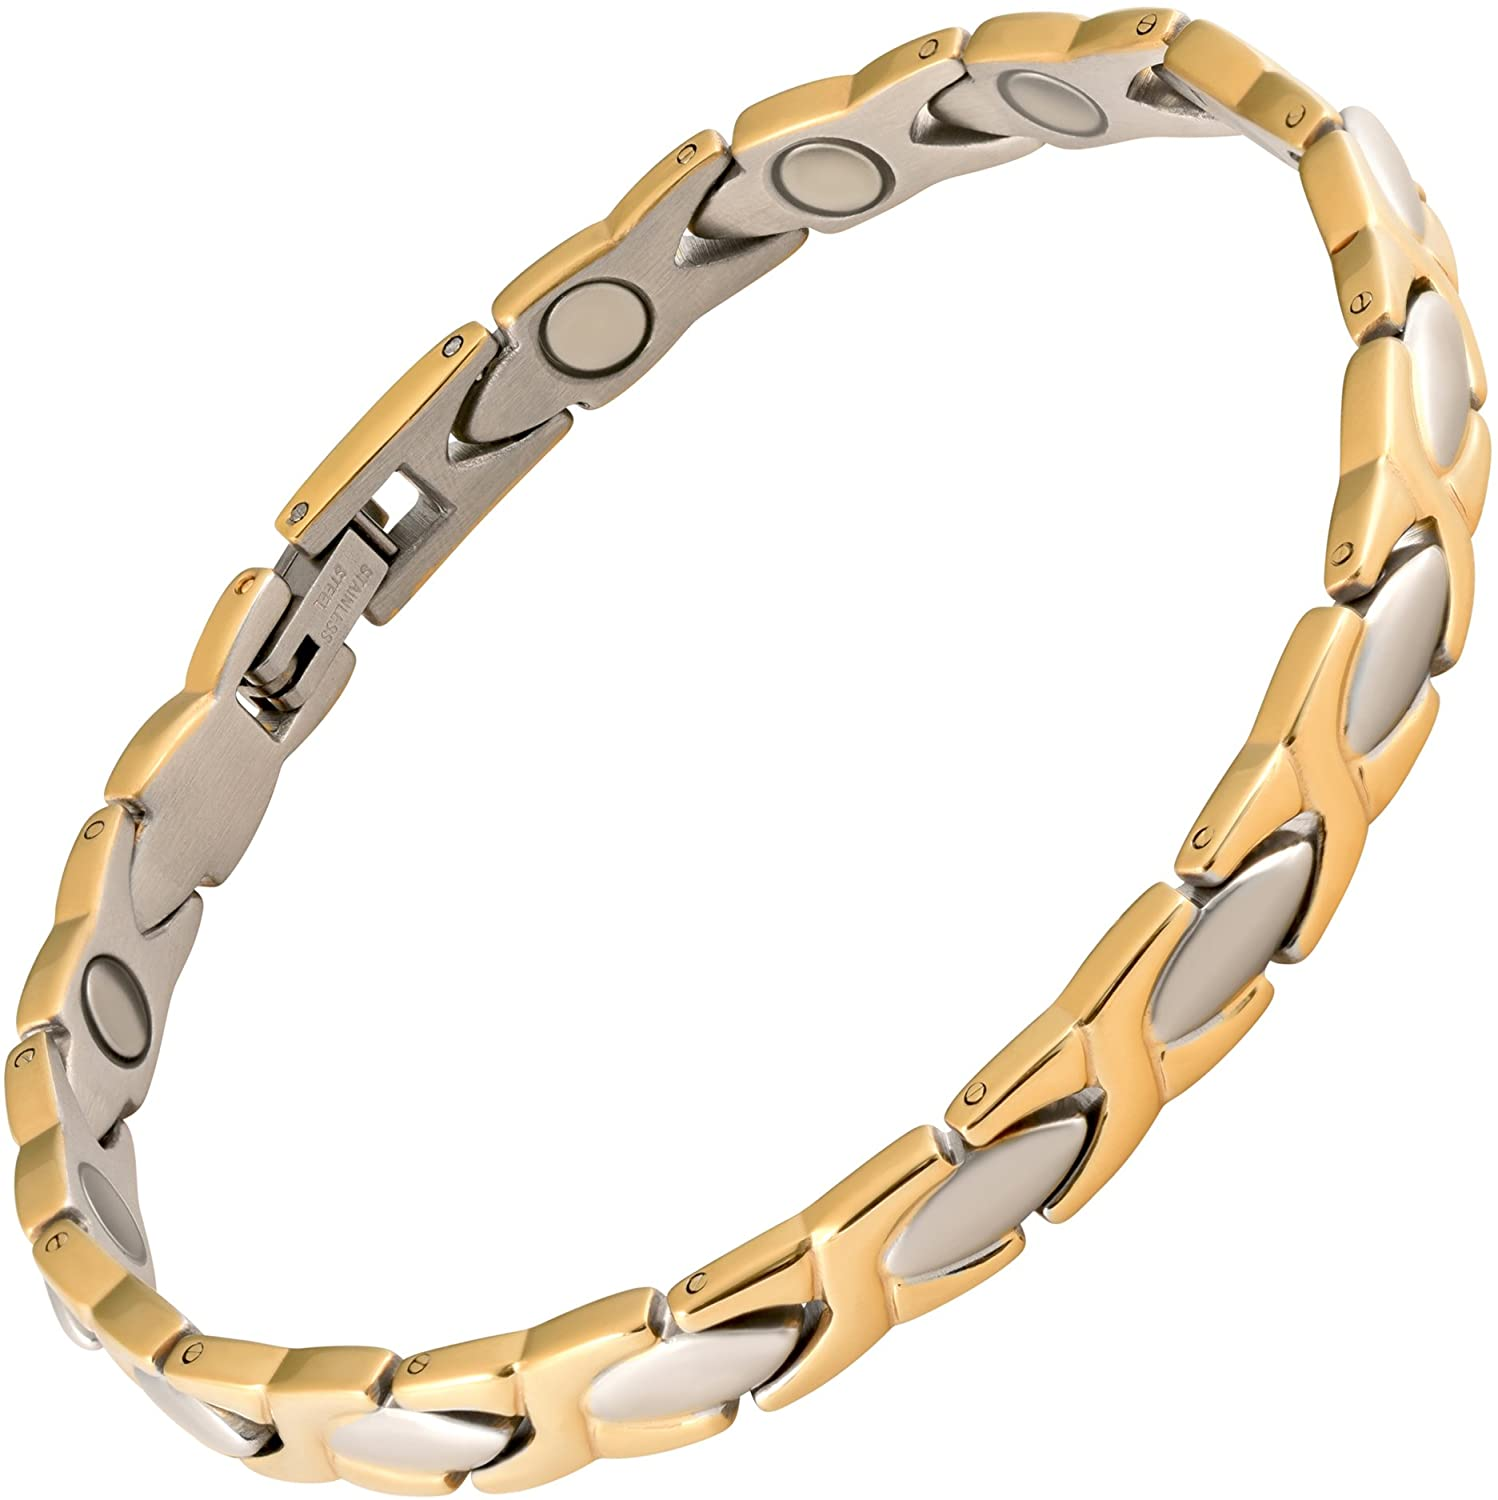 MAGNETJEWELRYSTORE Magnetic Therapy Bracelet Stainless Steel 2 Tone XOXO